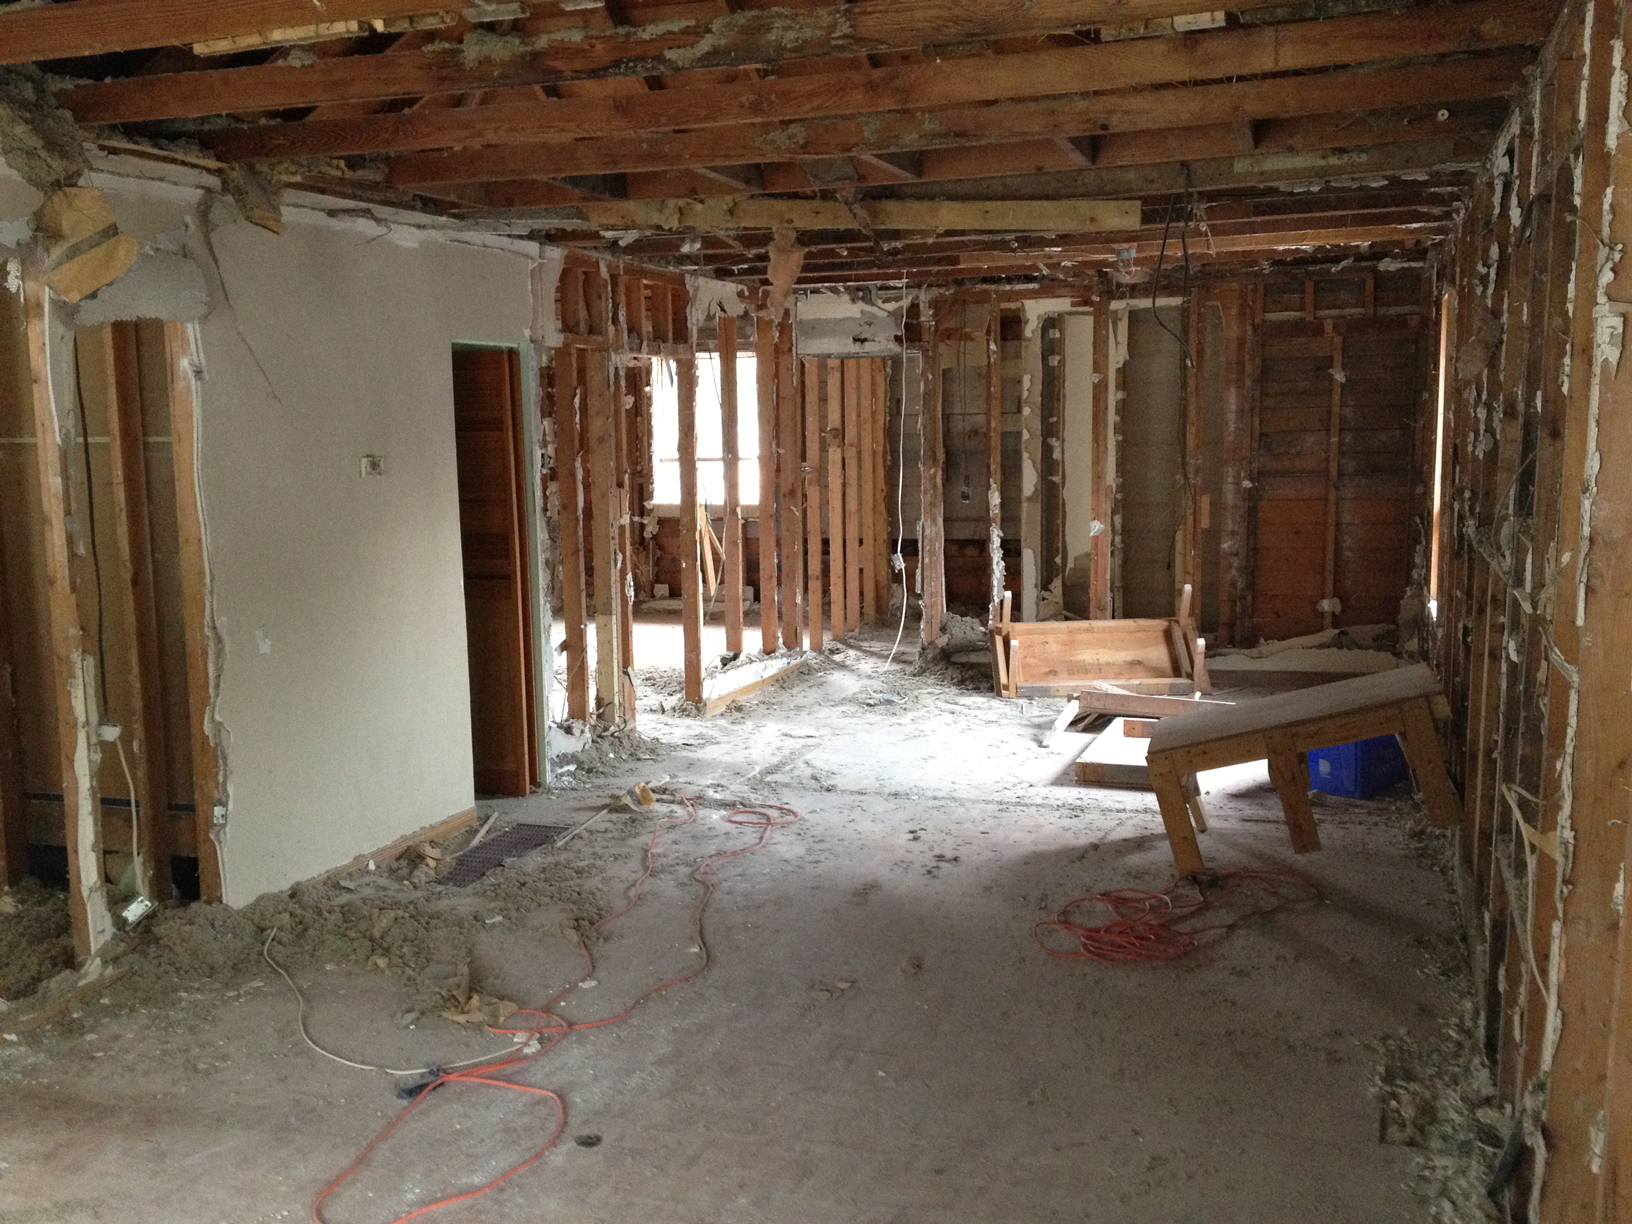 Demo shot - Looking towards the back of house